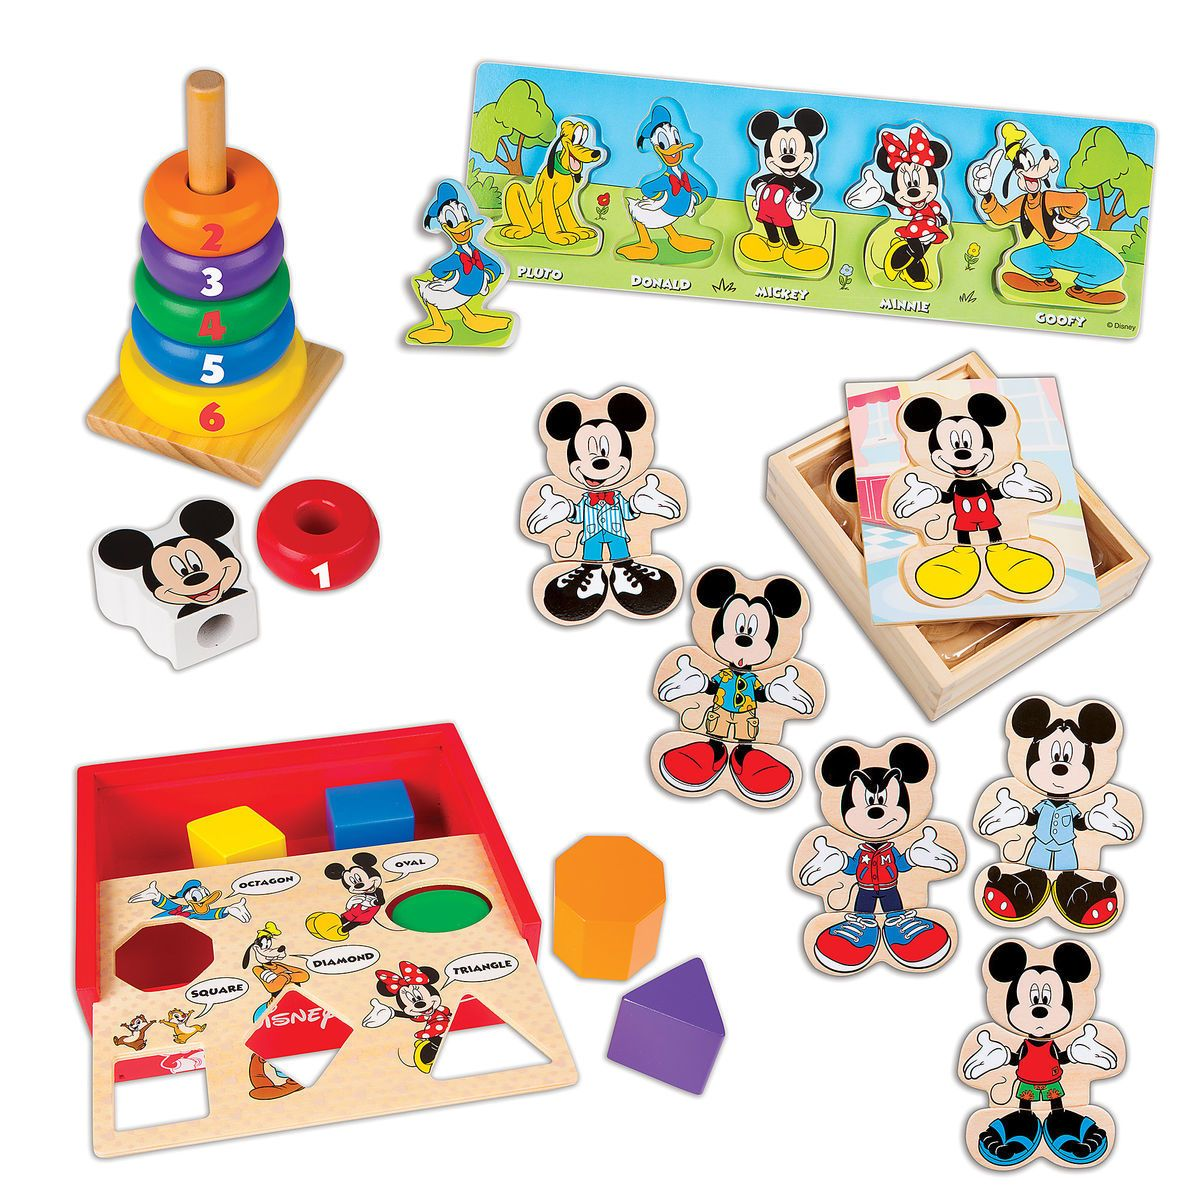 mickey mouse deluxe wooden classic toy setmelissa & doug